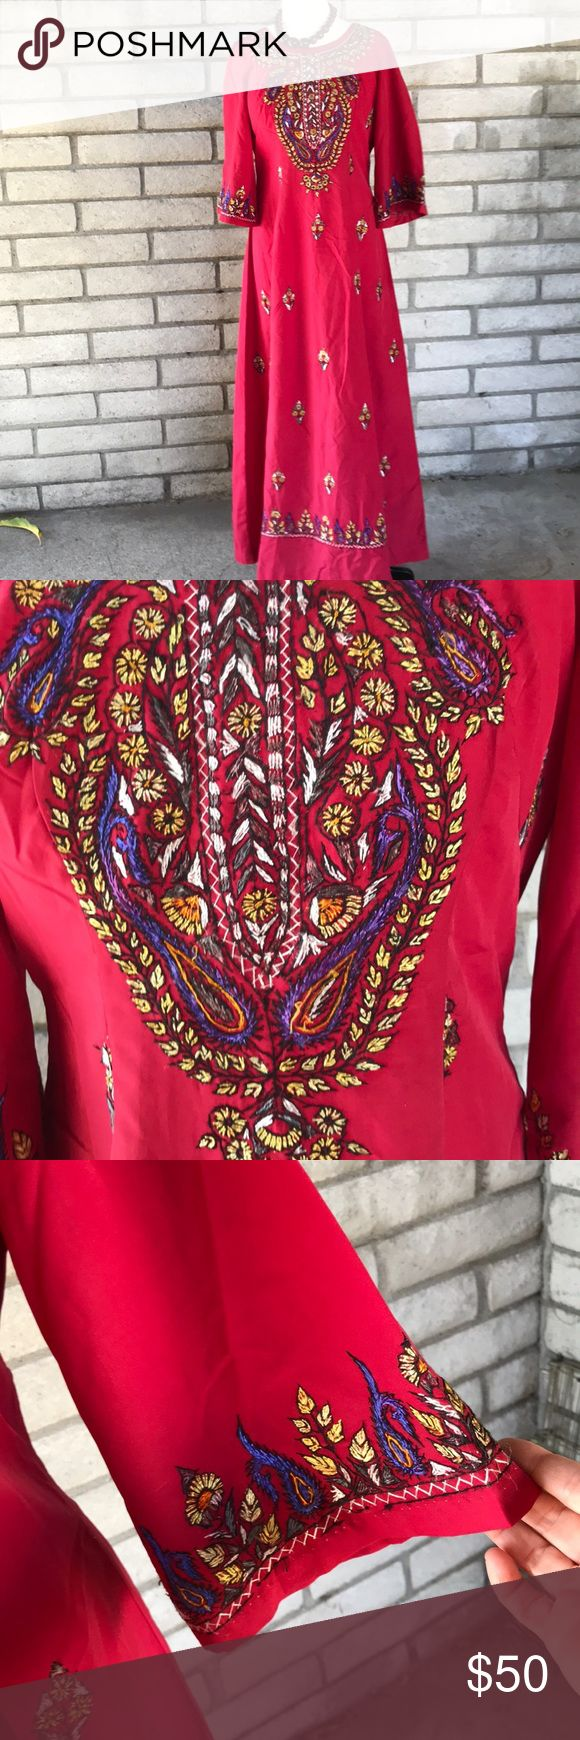 """Vintage Tribal Maxi Gorgeous embroidered bell sleeves maxi. Purple yellow, saffron, black, white threads on scarlet red.  White metal zip+ hook  up the back. A few signs of wear, small spots as noted in pics. No tags maybe rayon? Chest is 19"""" flat no stretch Length is 57.5"""". Bitchin  festival dress m to l Dresses Maxi"""